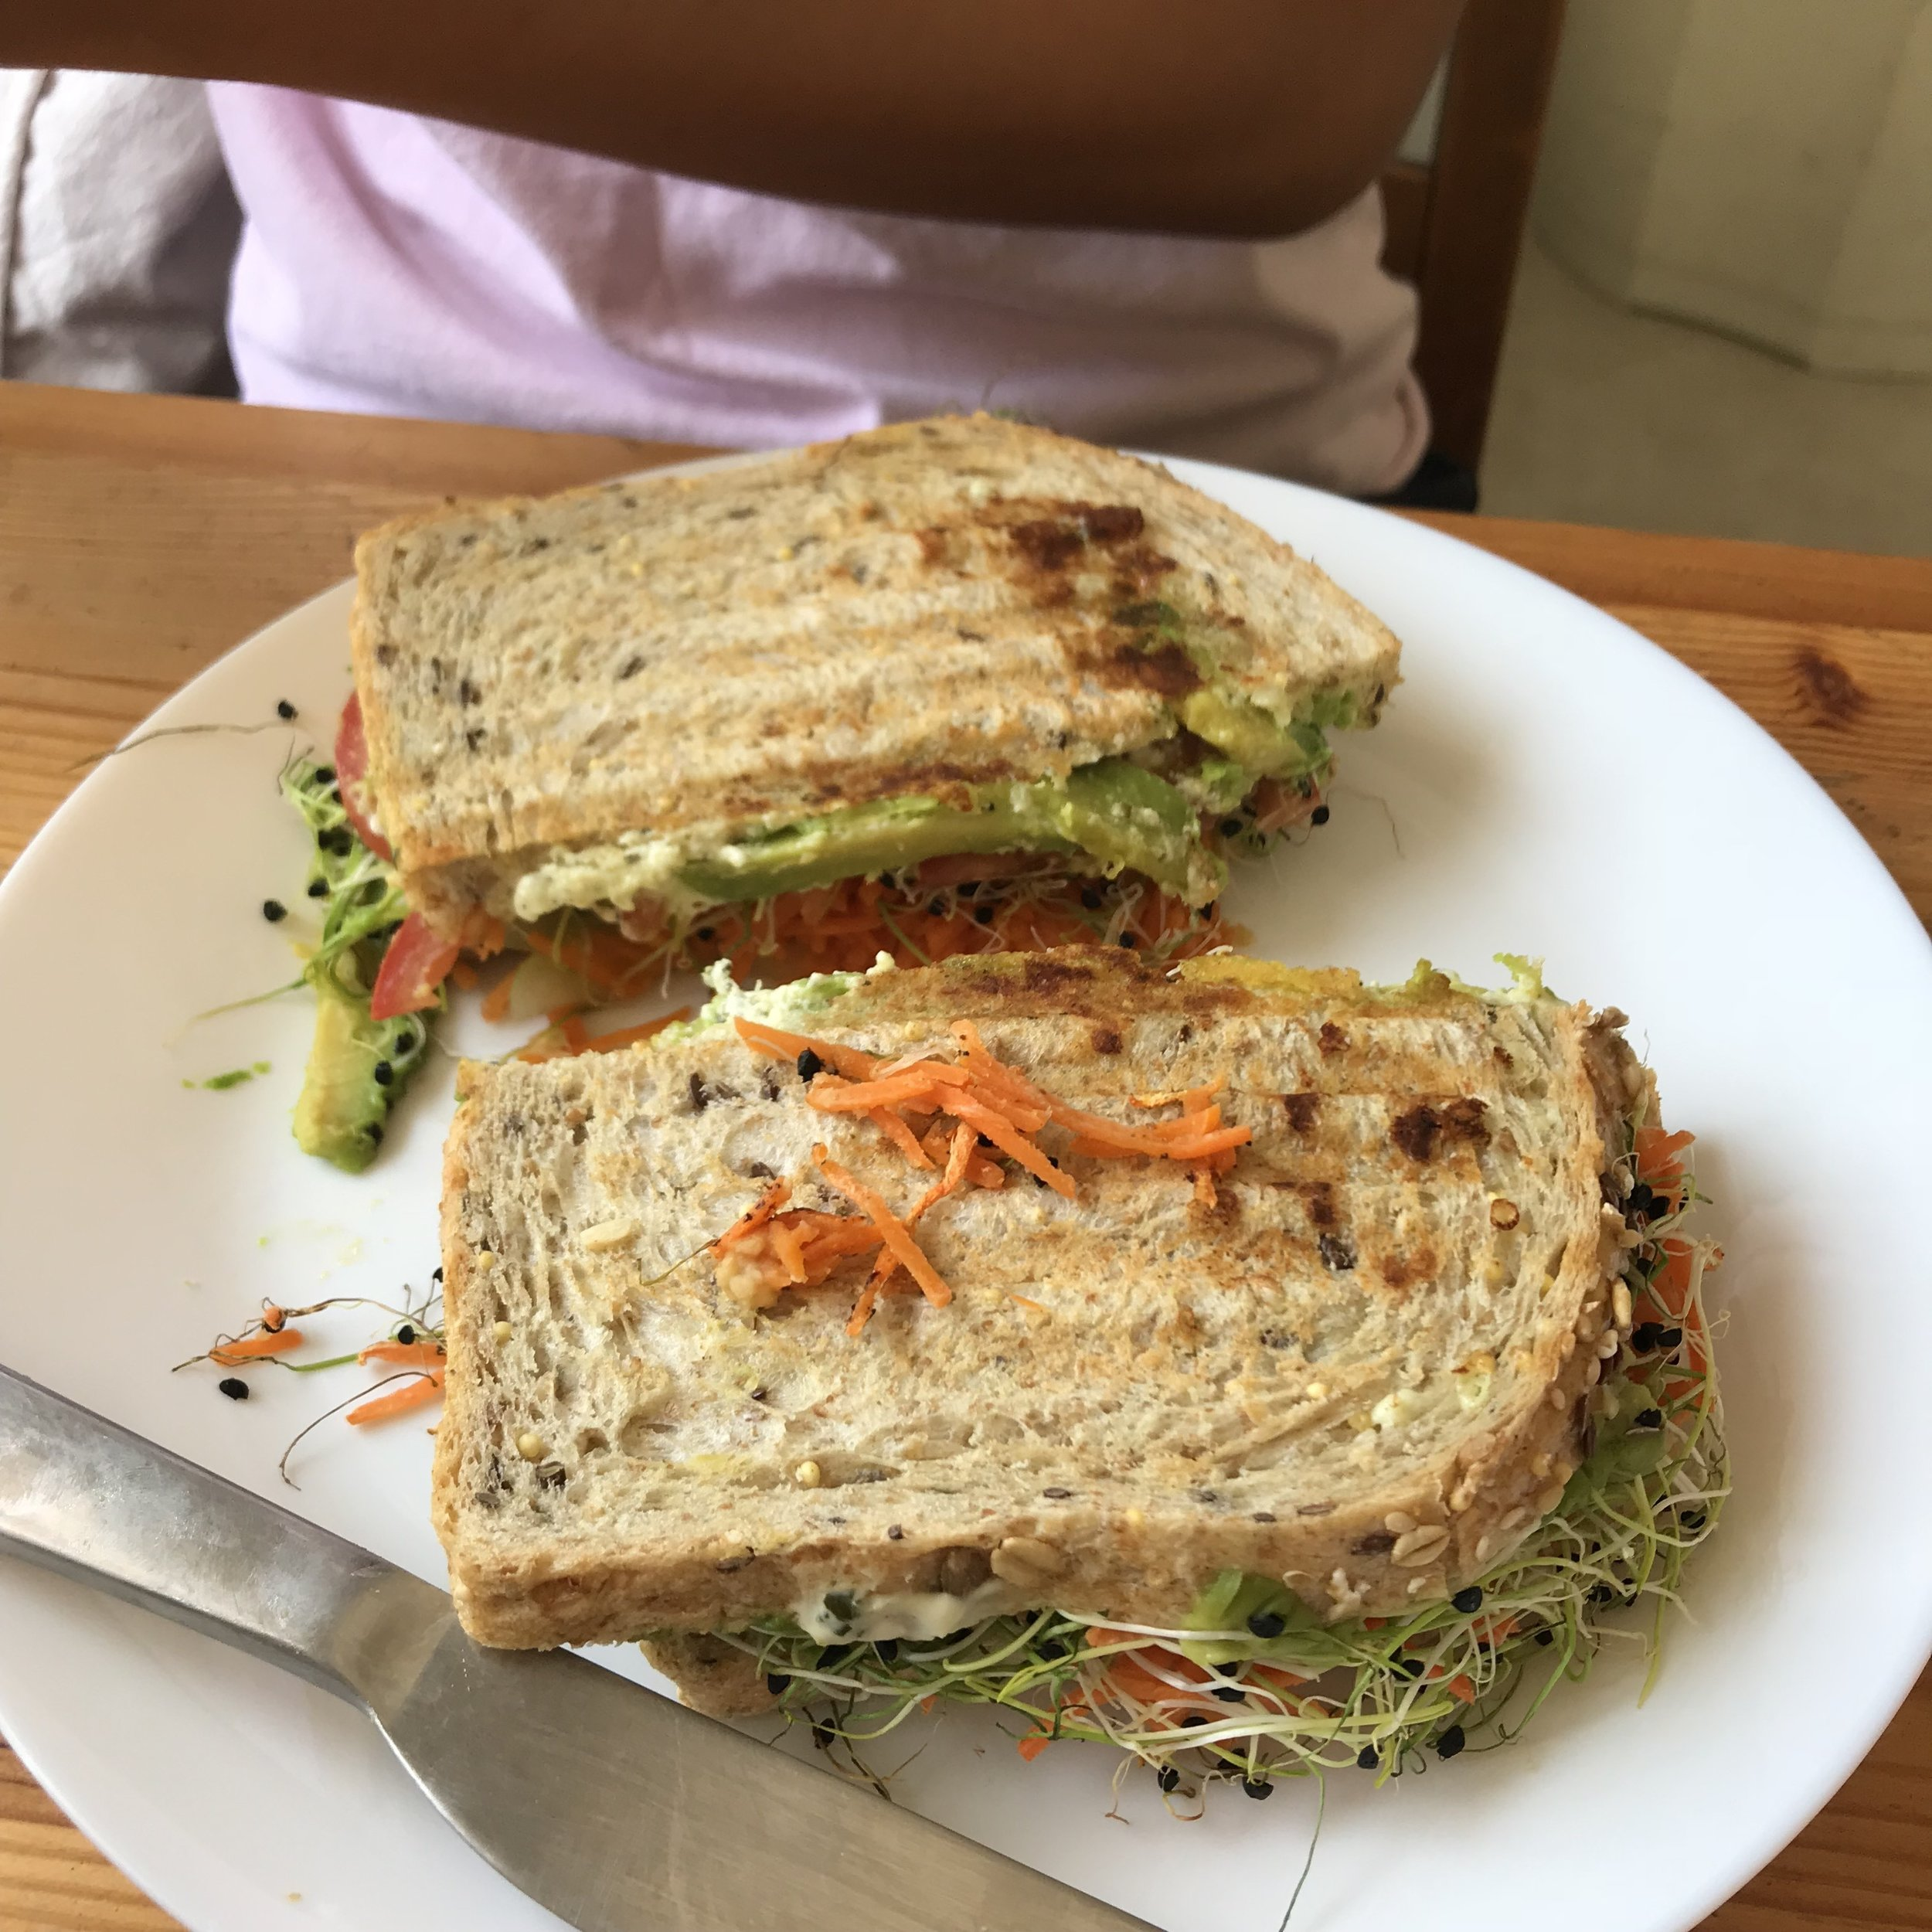 Vegetable sandwich.